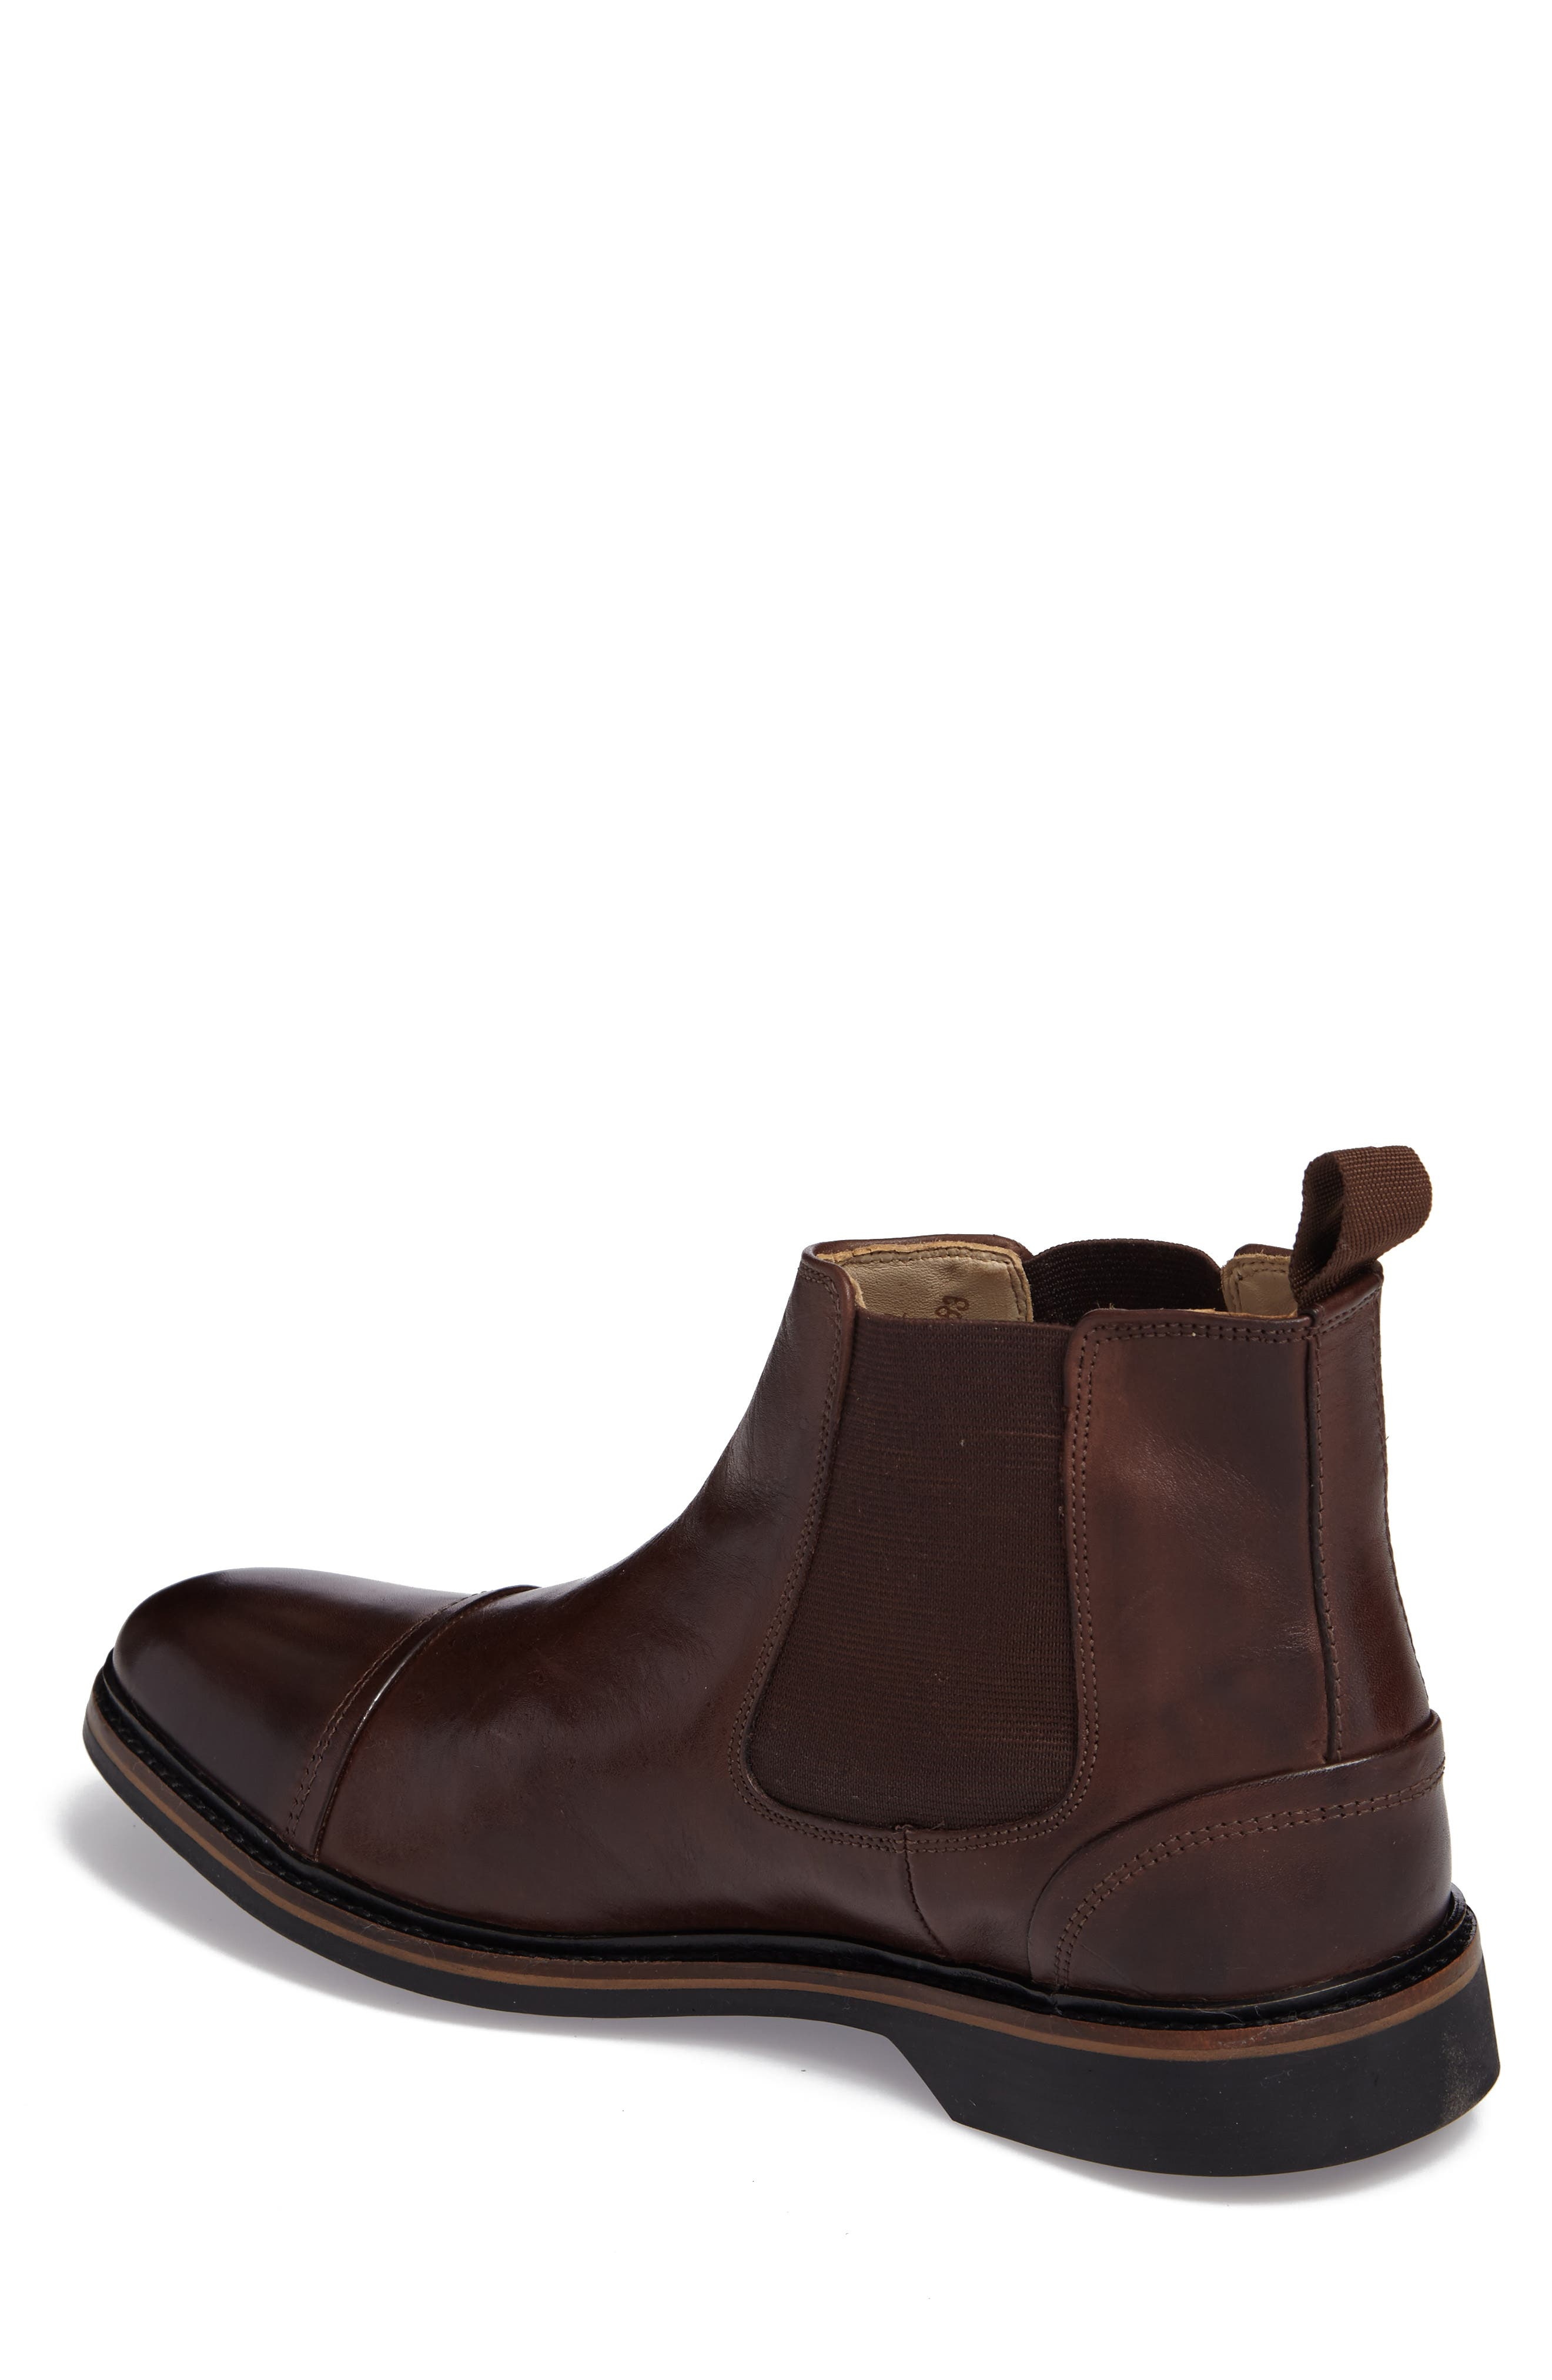 Floriano Chelsea Boot,                             Alternate thumbnail 2, color,                             200